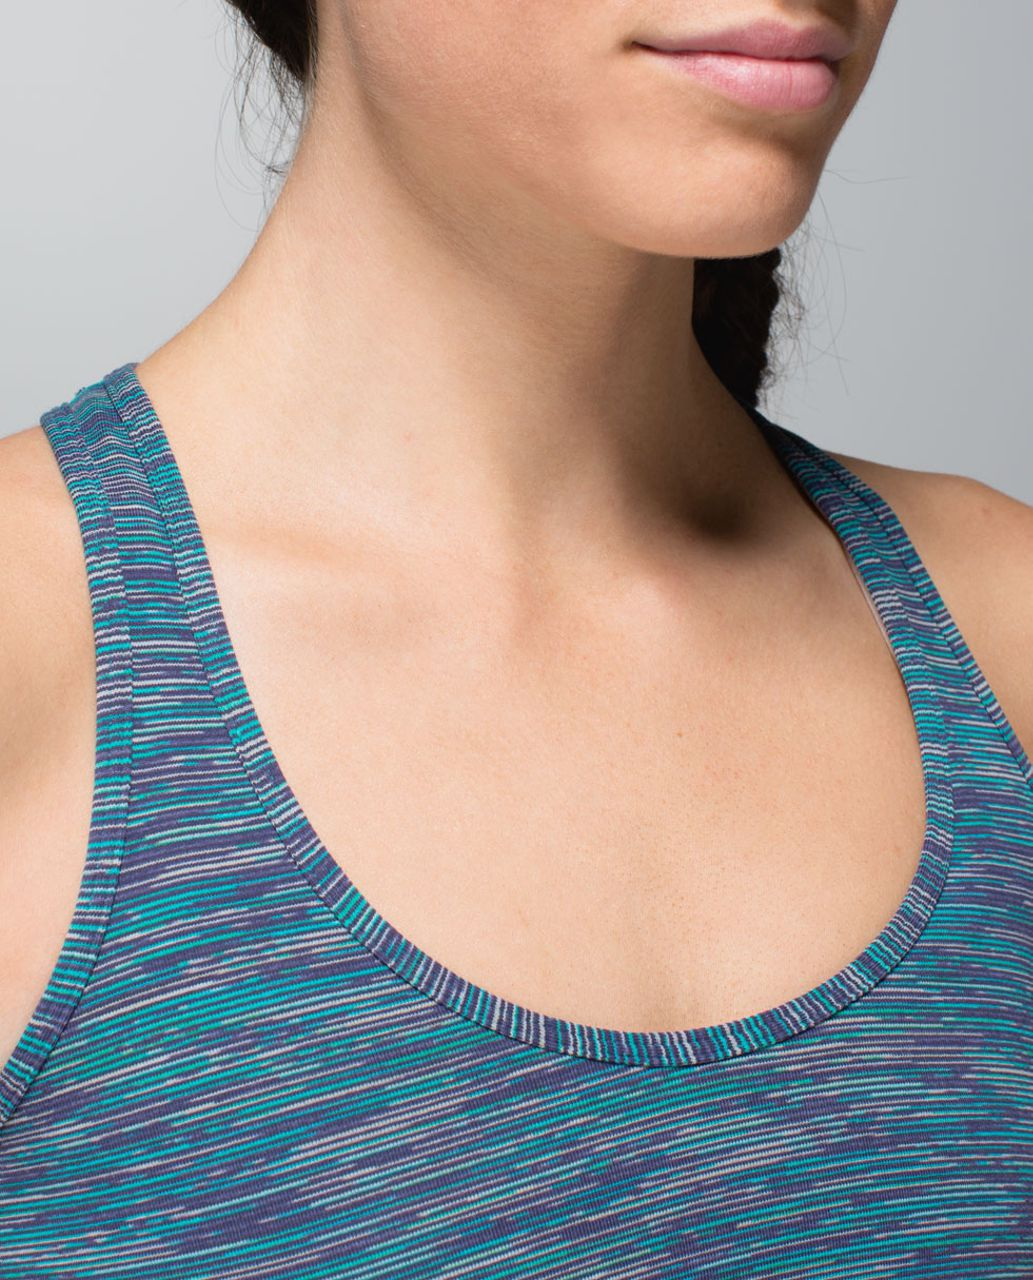 Lululemon Cool Racerback - Wee Are From Space Blue Tropics